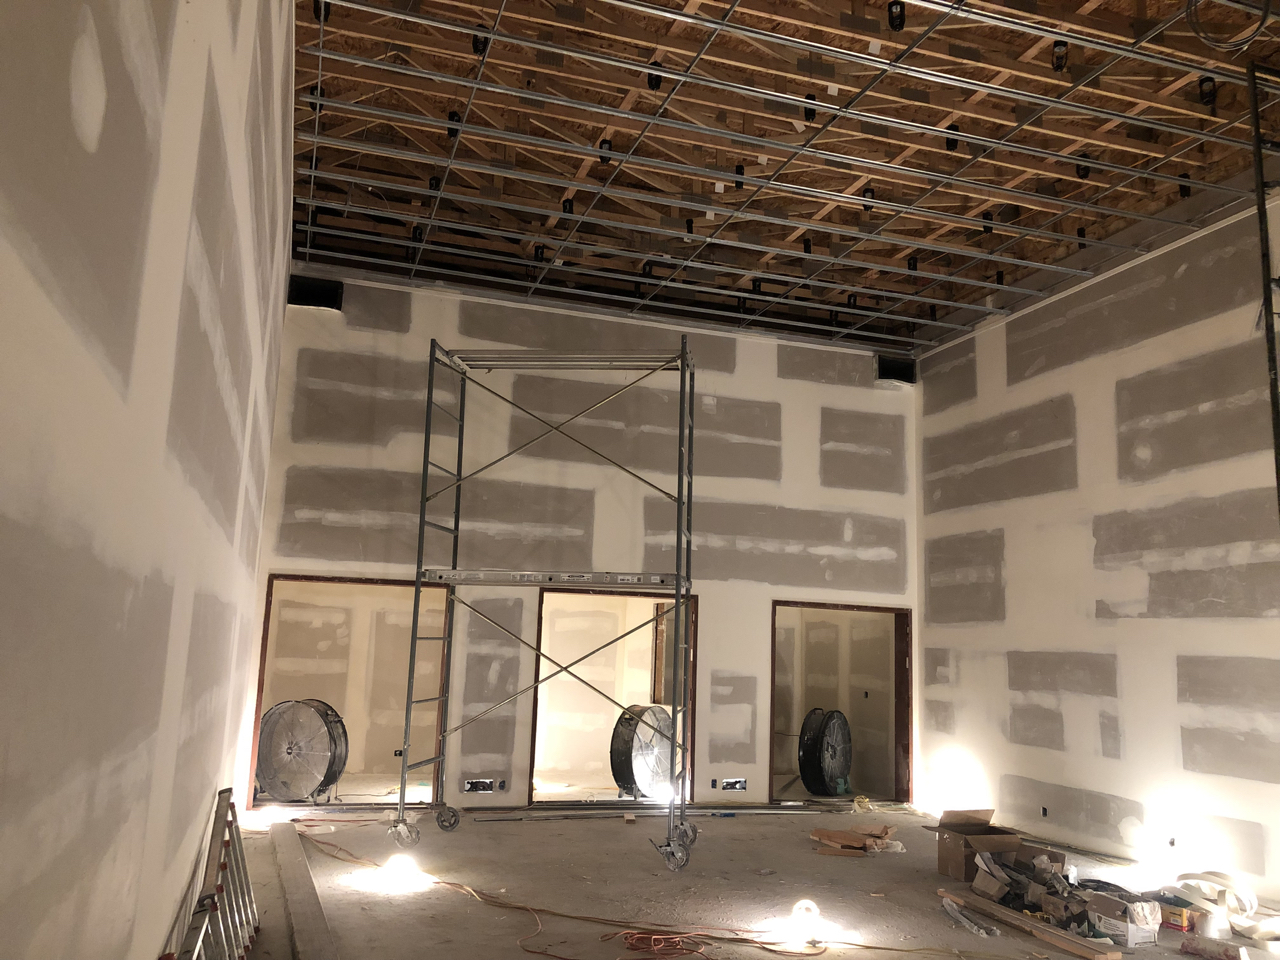 Tracking room 1.